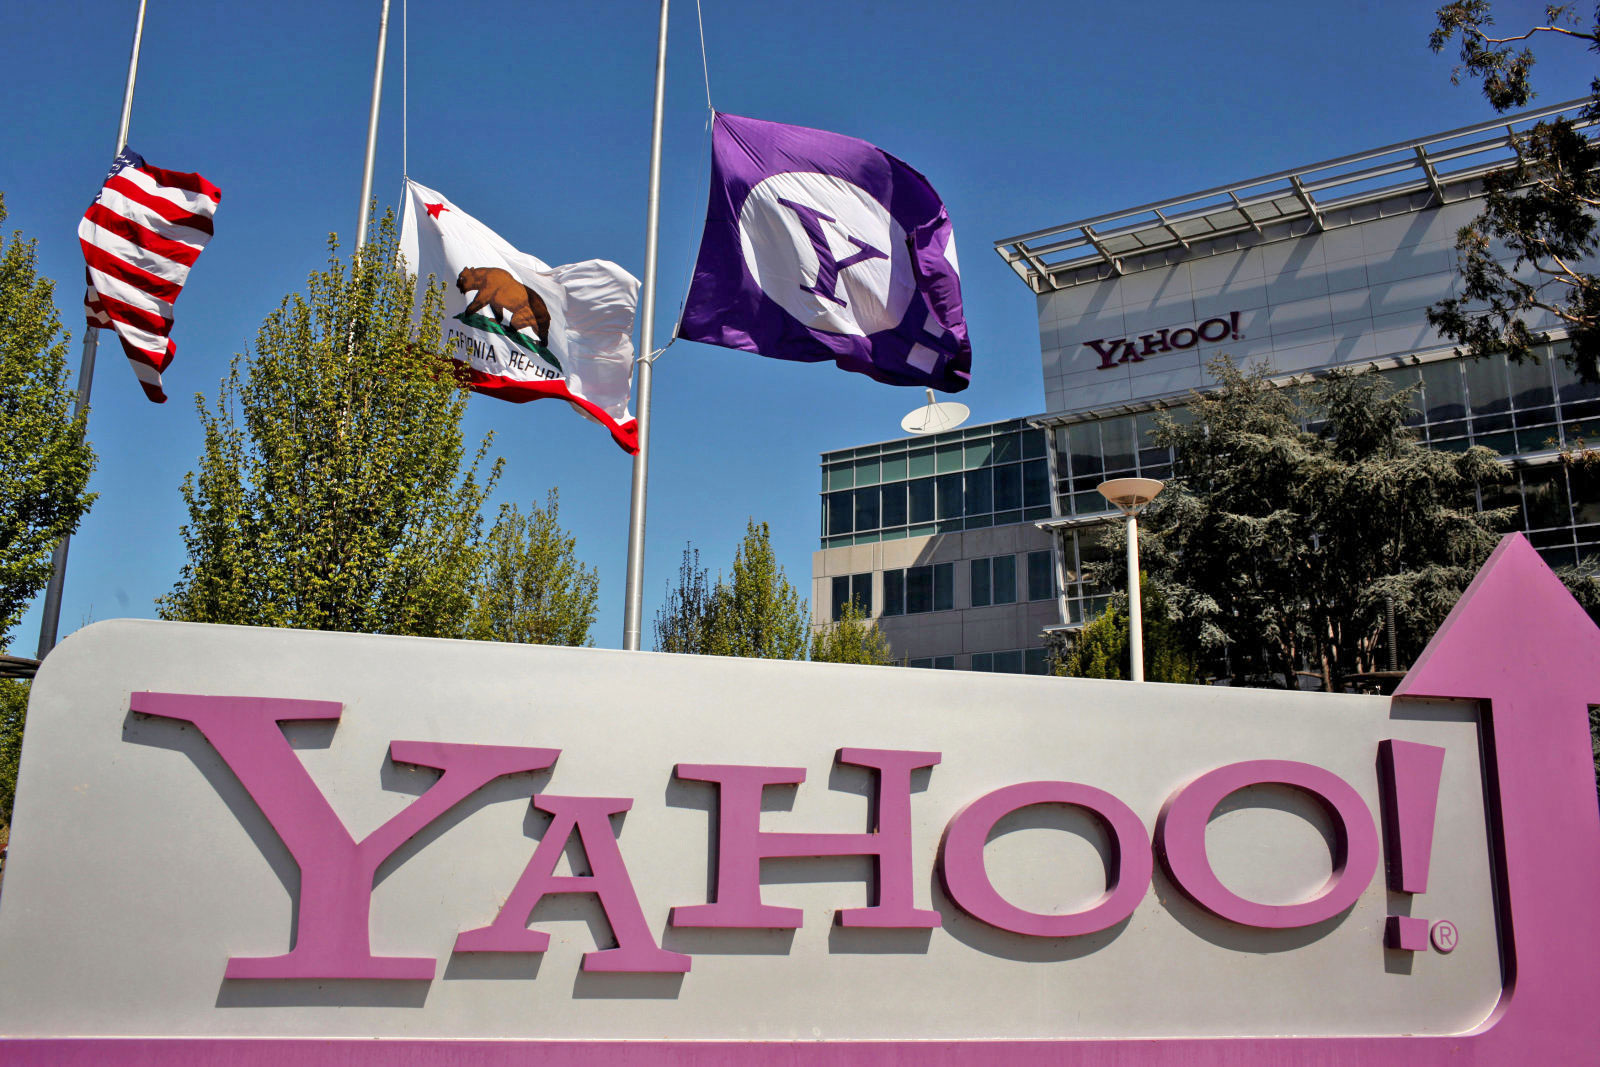 What's left of Yahoo slapped with $35 million fine over 2014 data breach